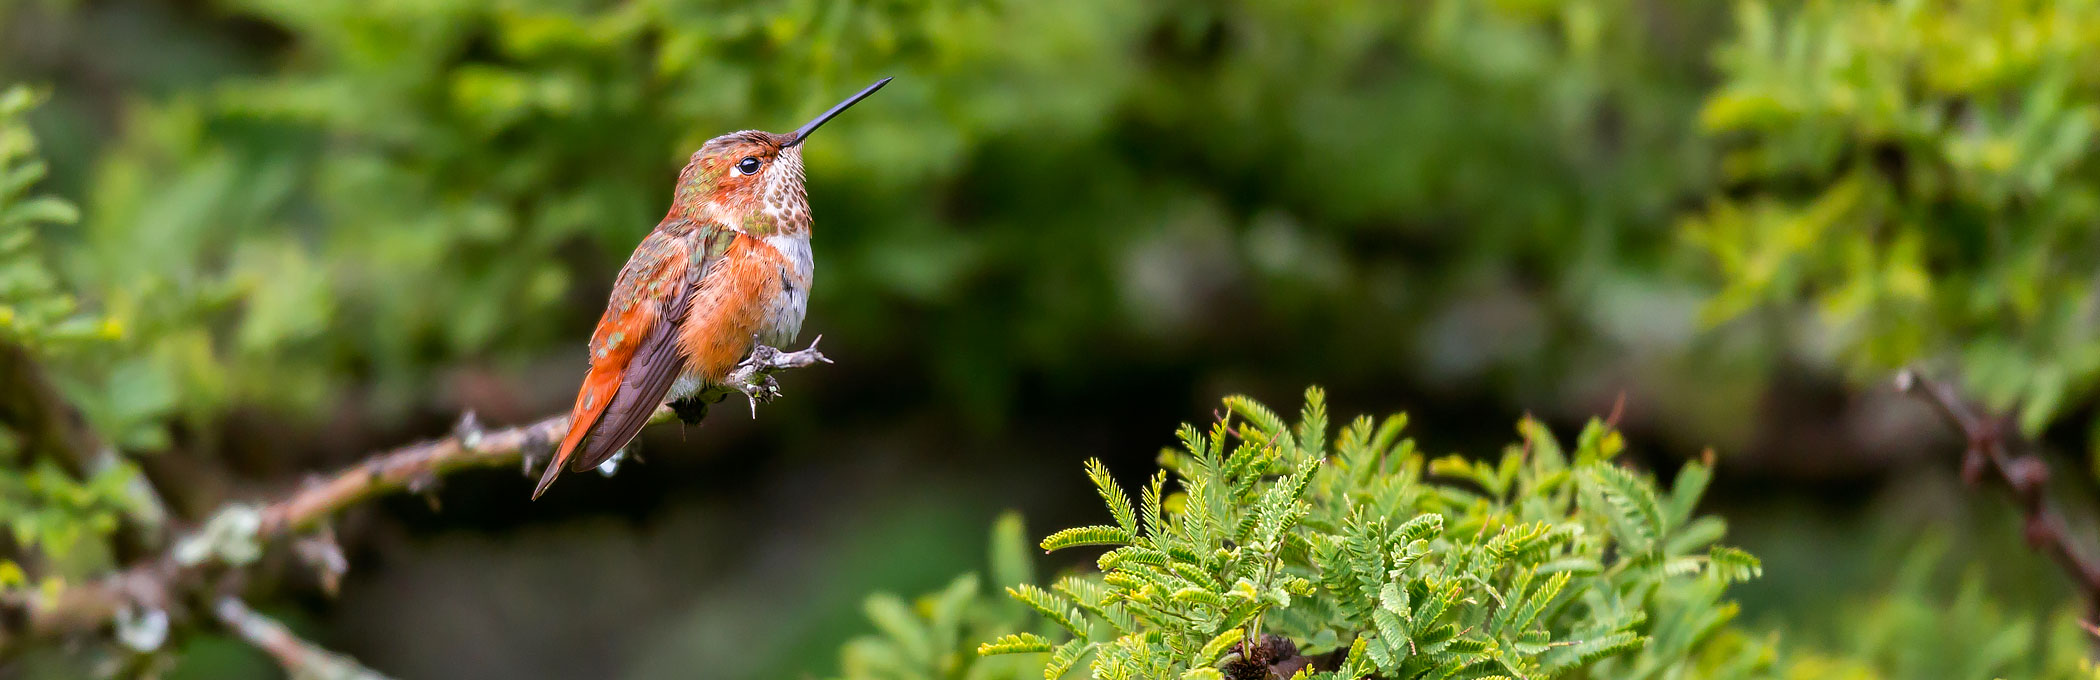 Small orange bird standing on branch